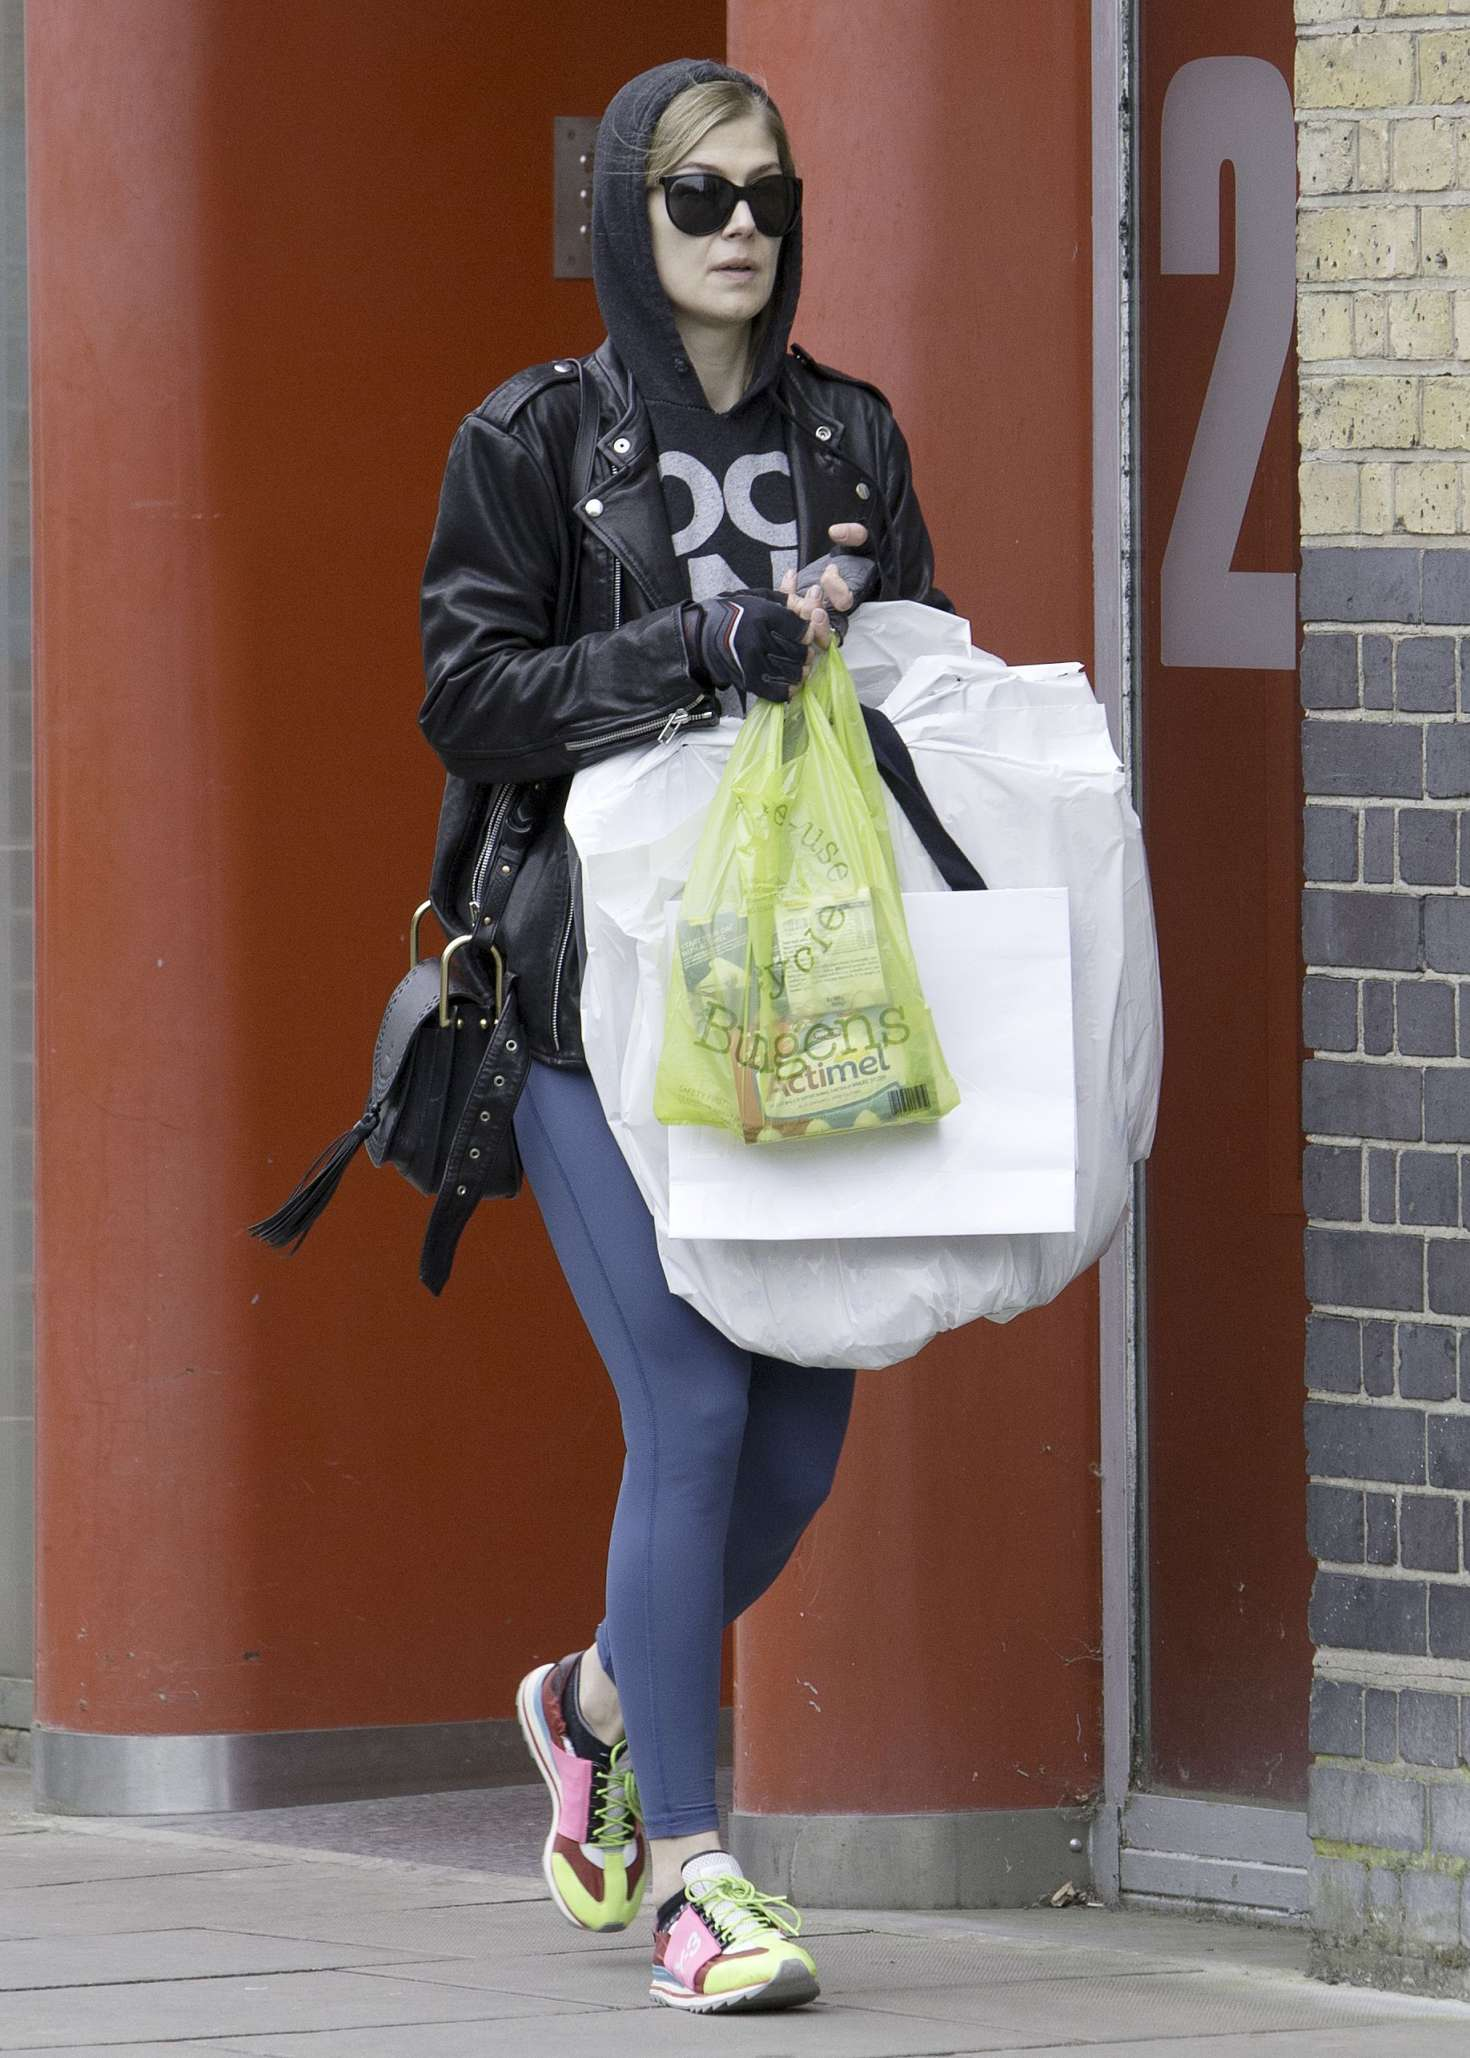 Rosamund pike picking up her dry cleaning in london new images